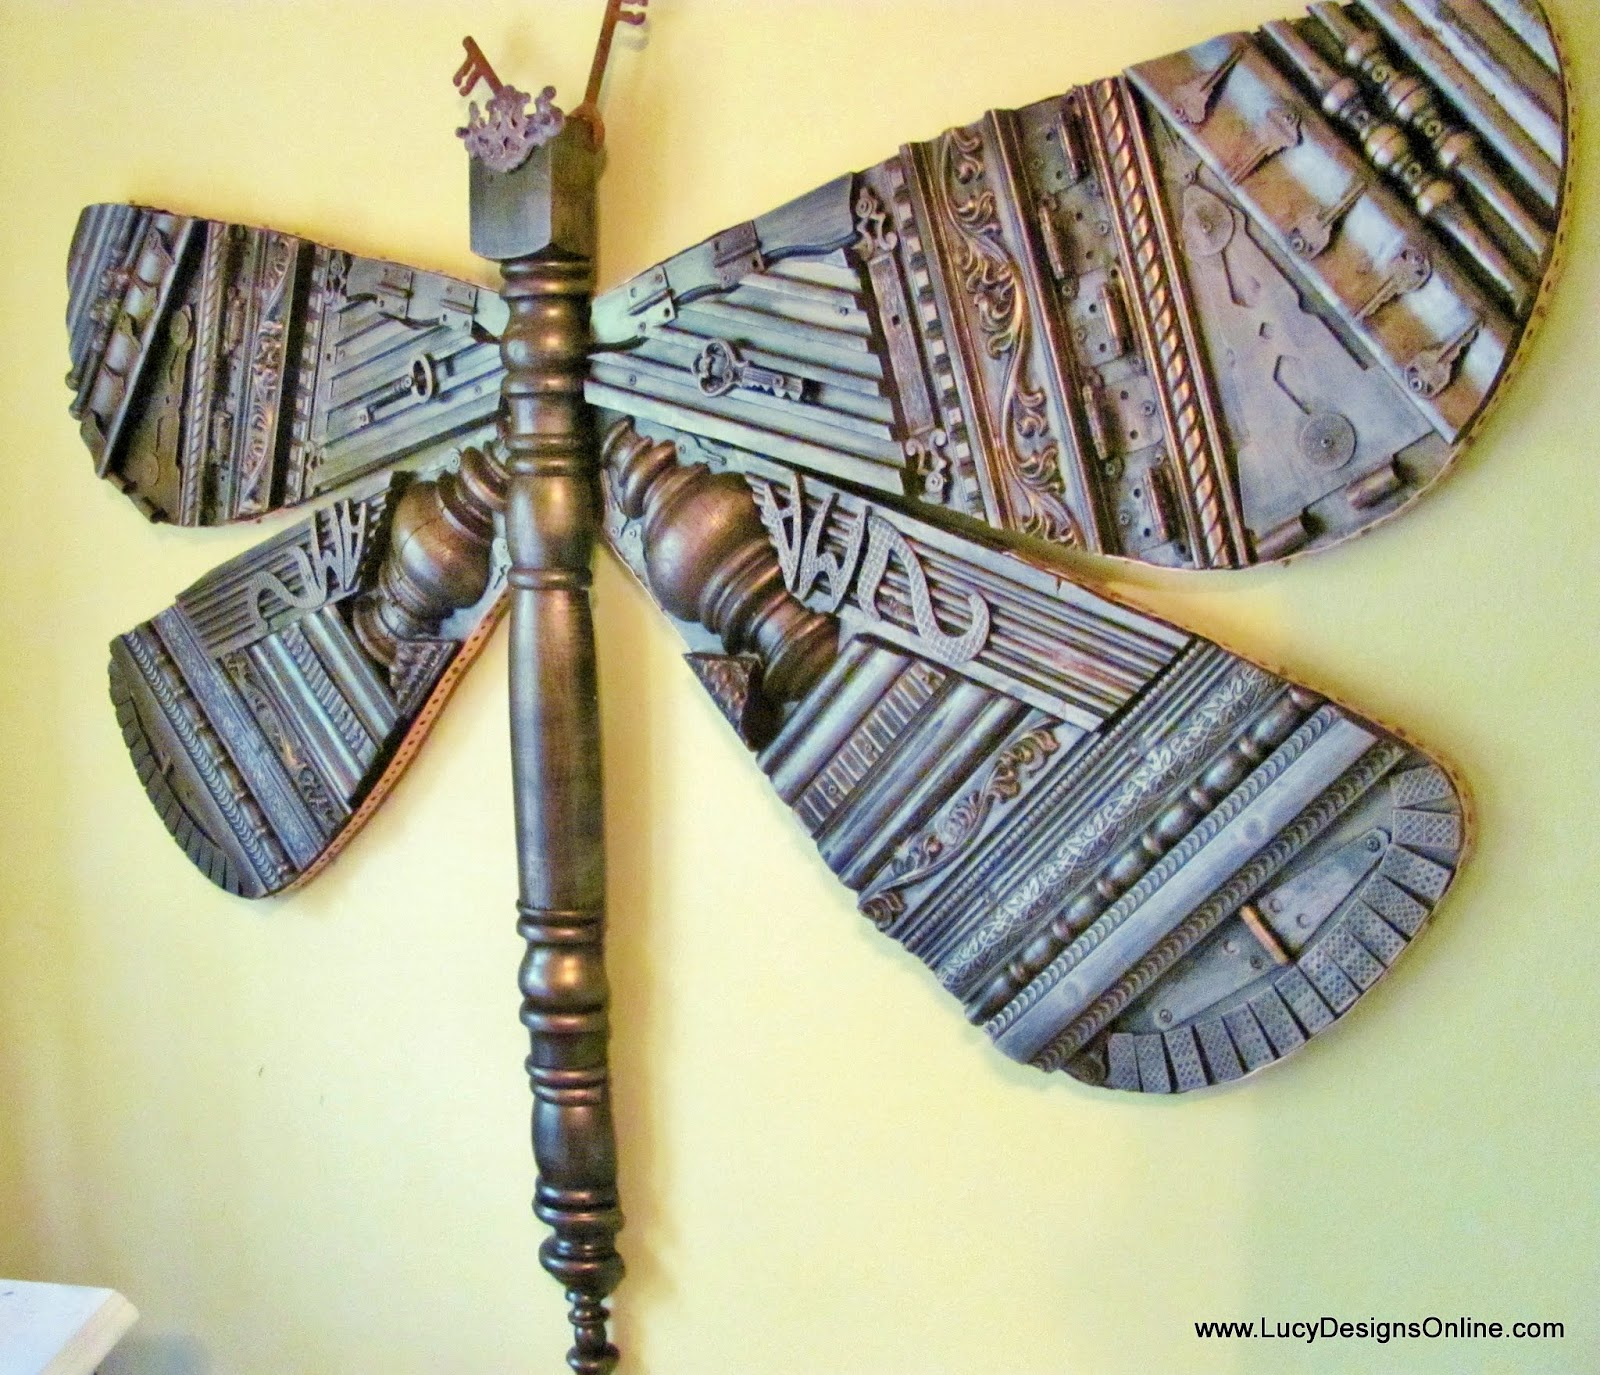 dragonfly recyled art sculpture from repurposed picture molding